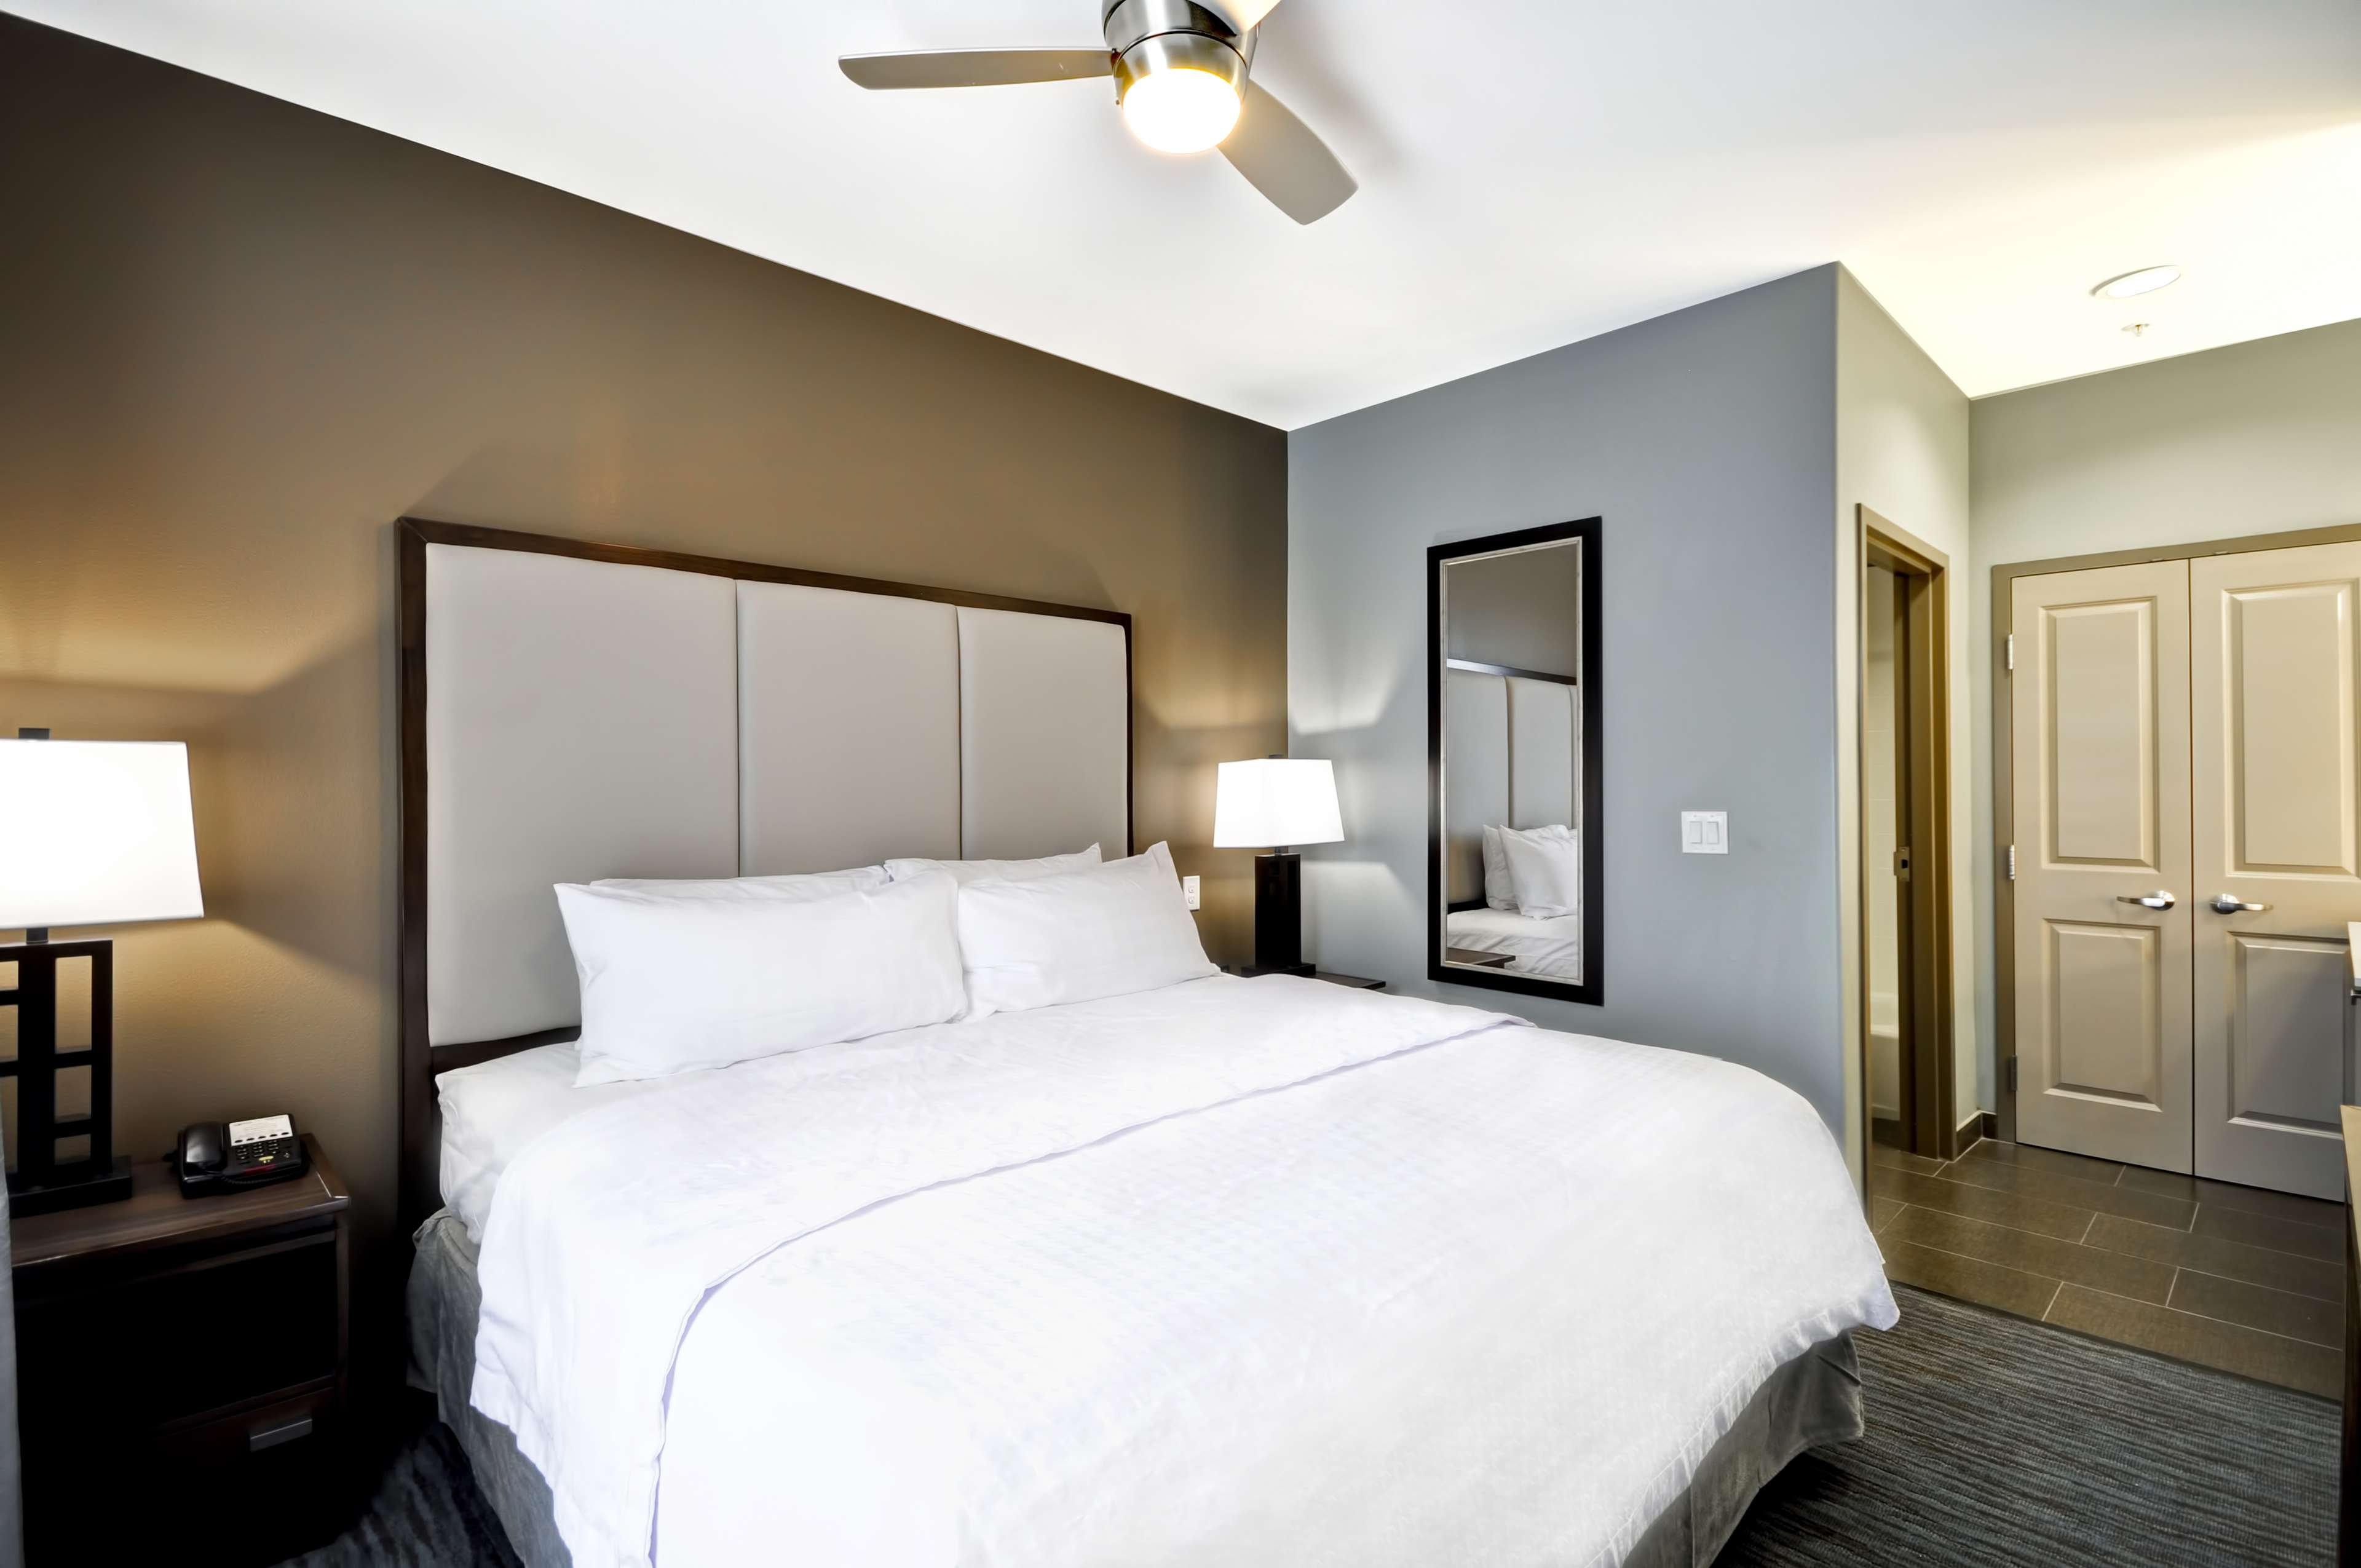 Homewood Suites by Hilton New Braunfels image 33